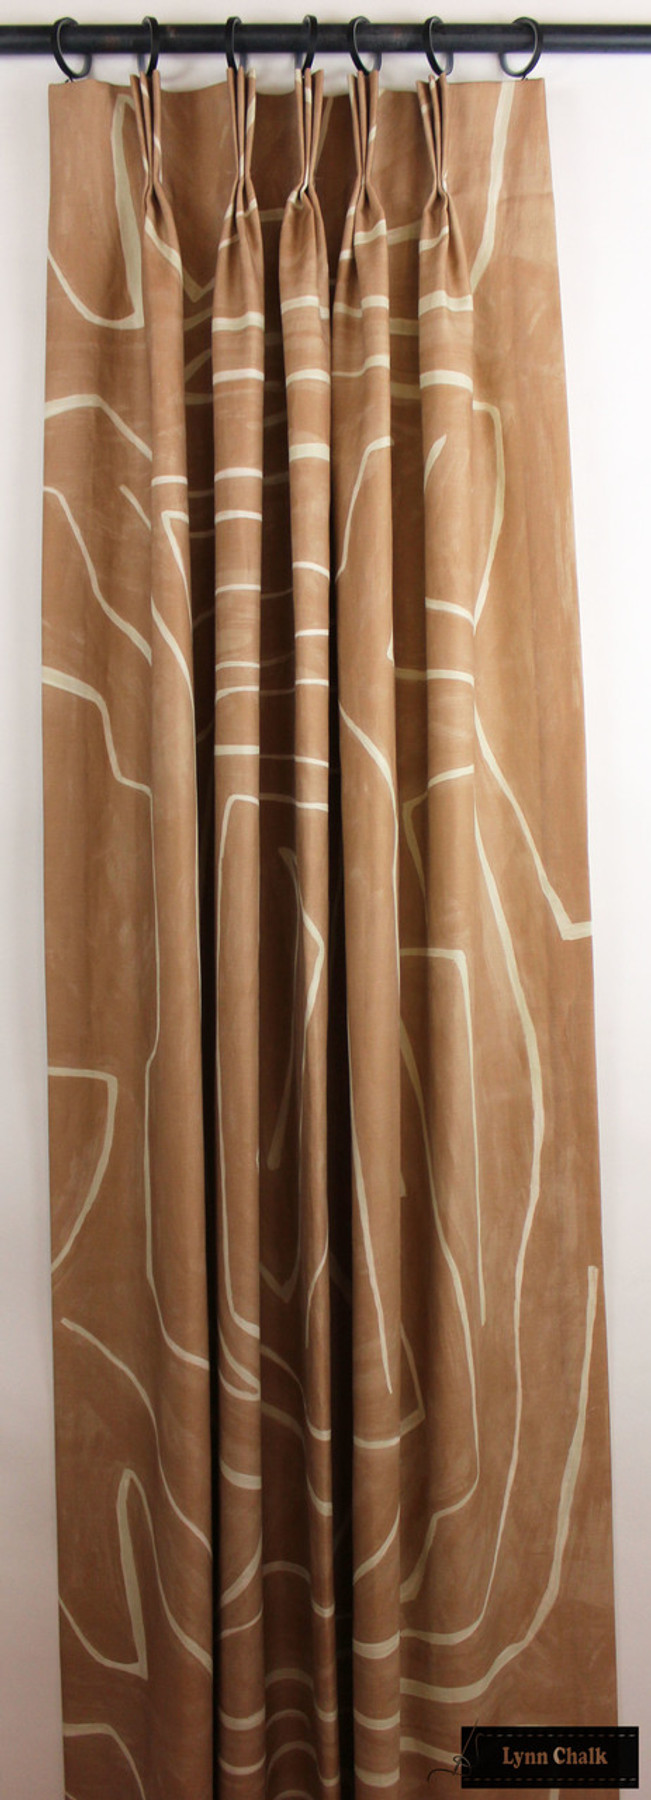 Kelly Wearstler Graffito Drapes in Salmon/Cream